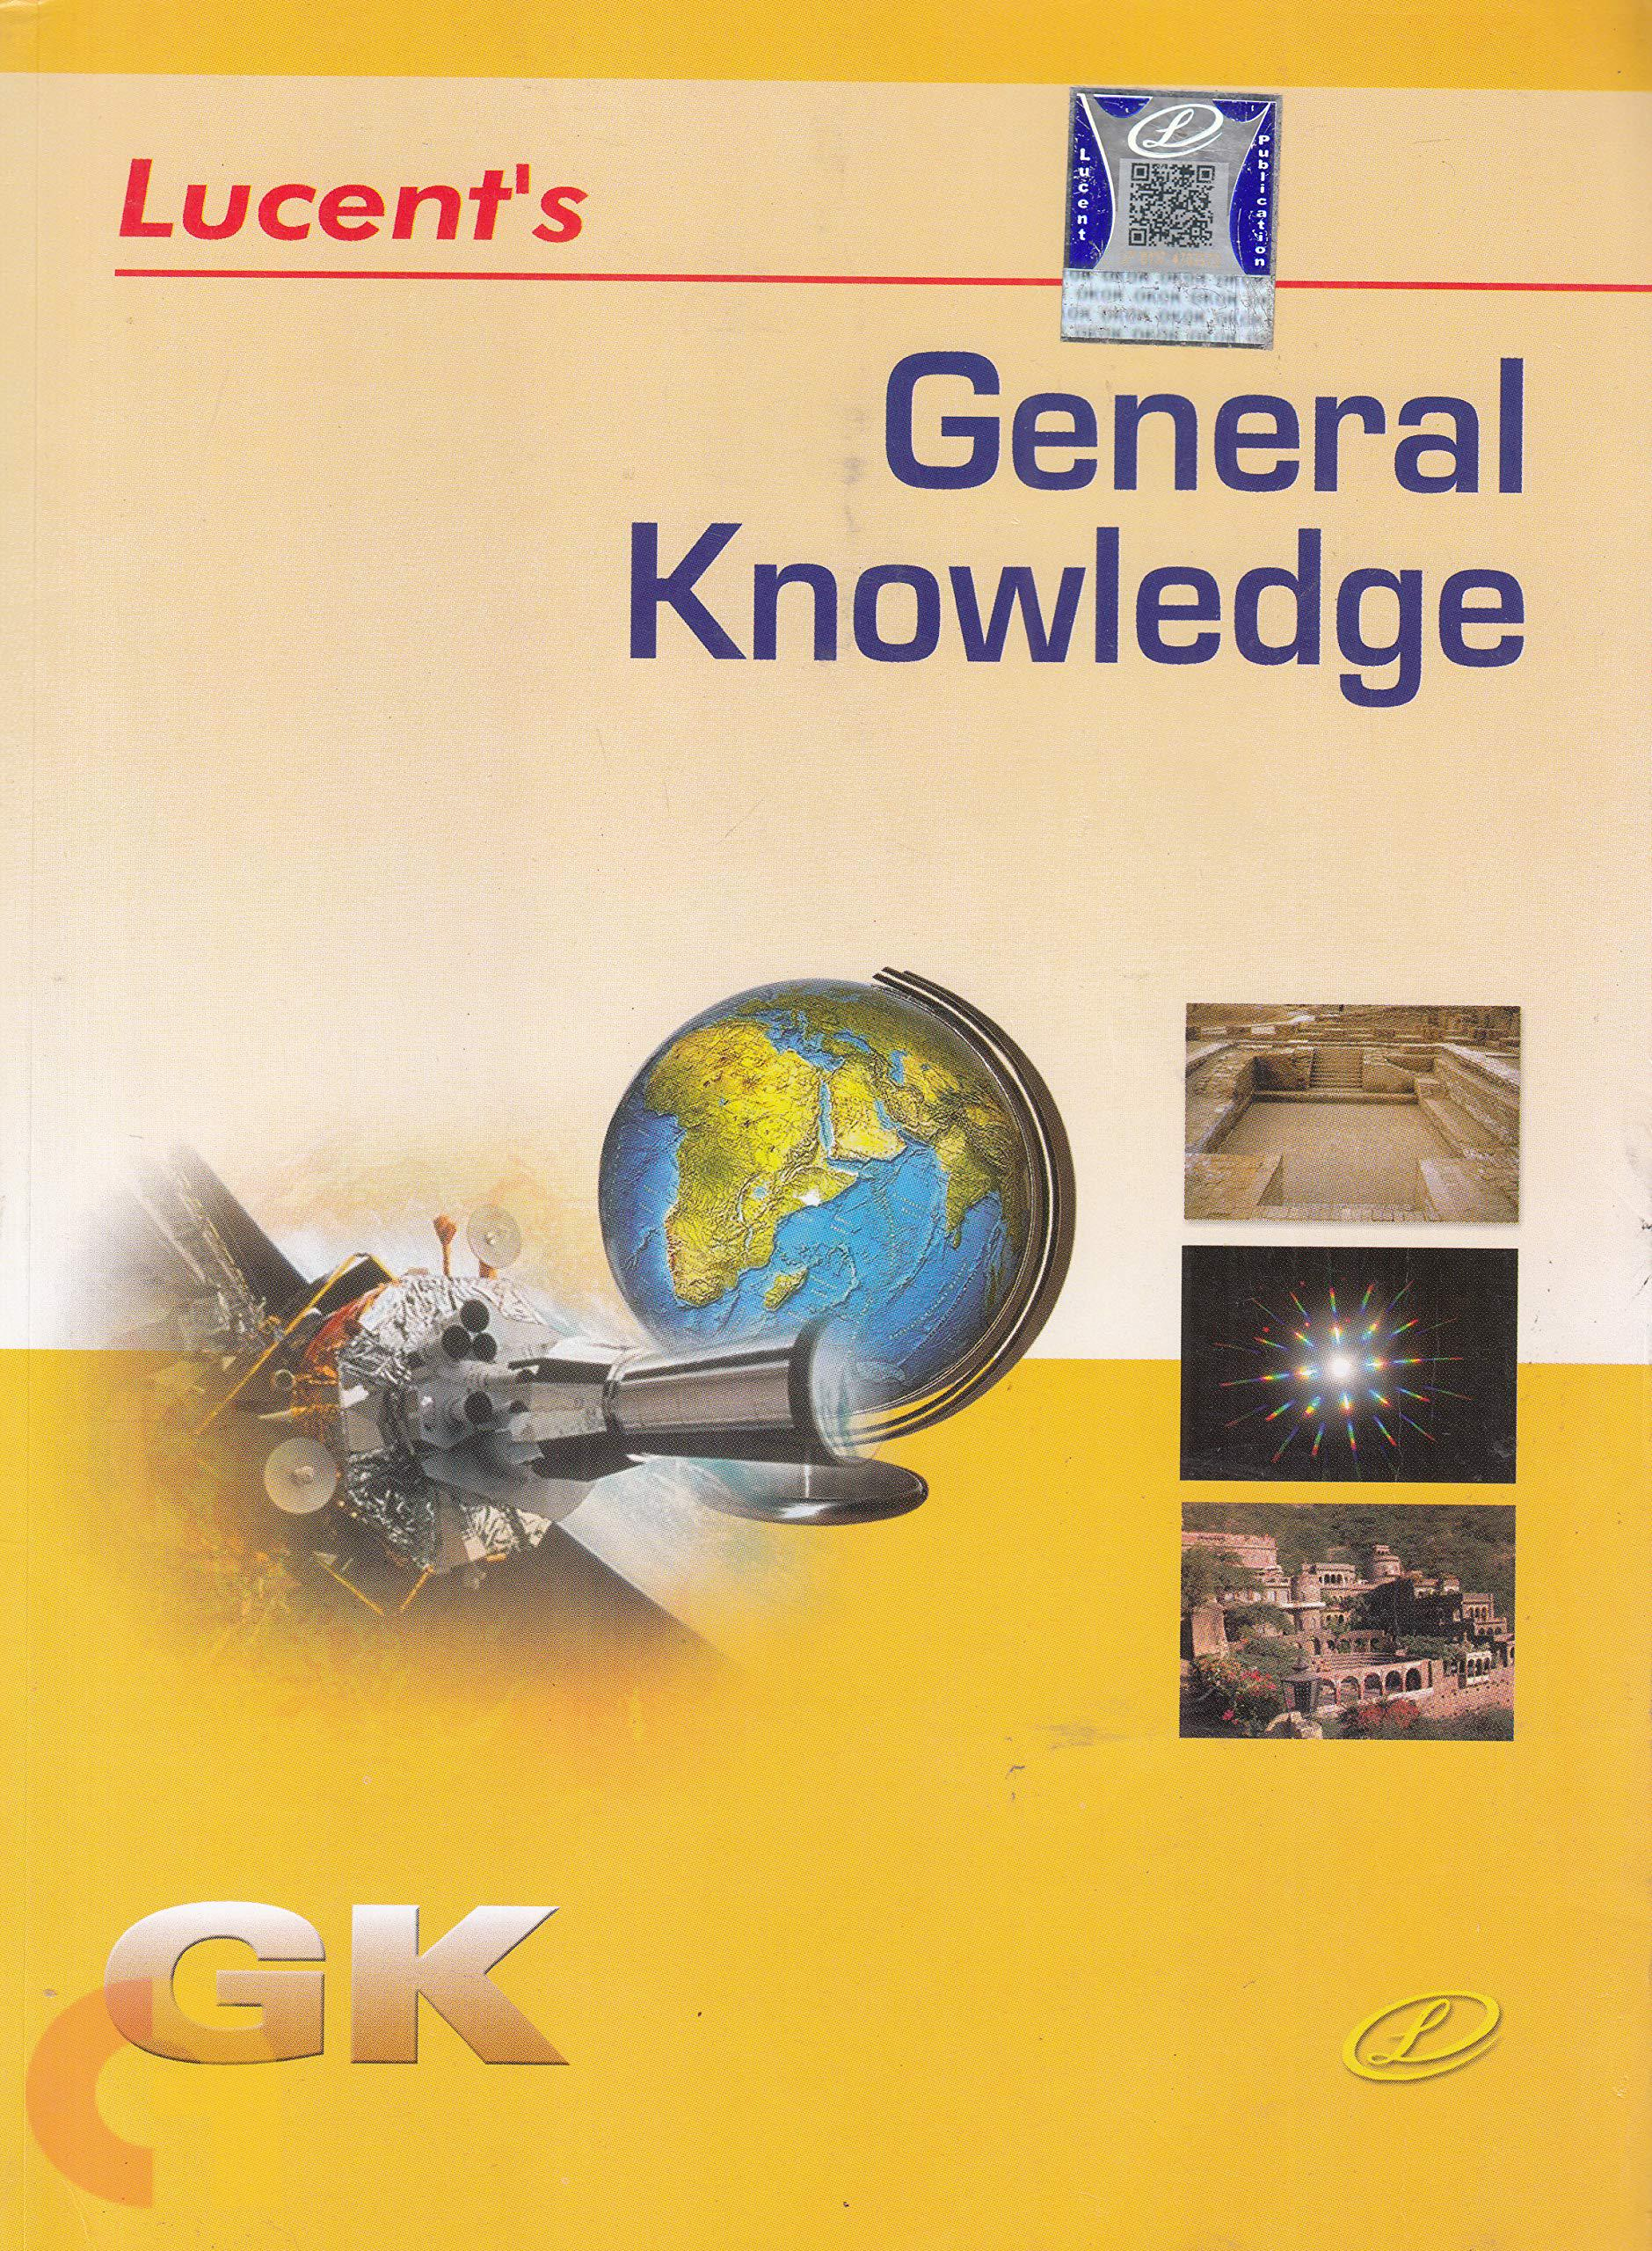 Lucent's General Knowlwdge